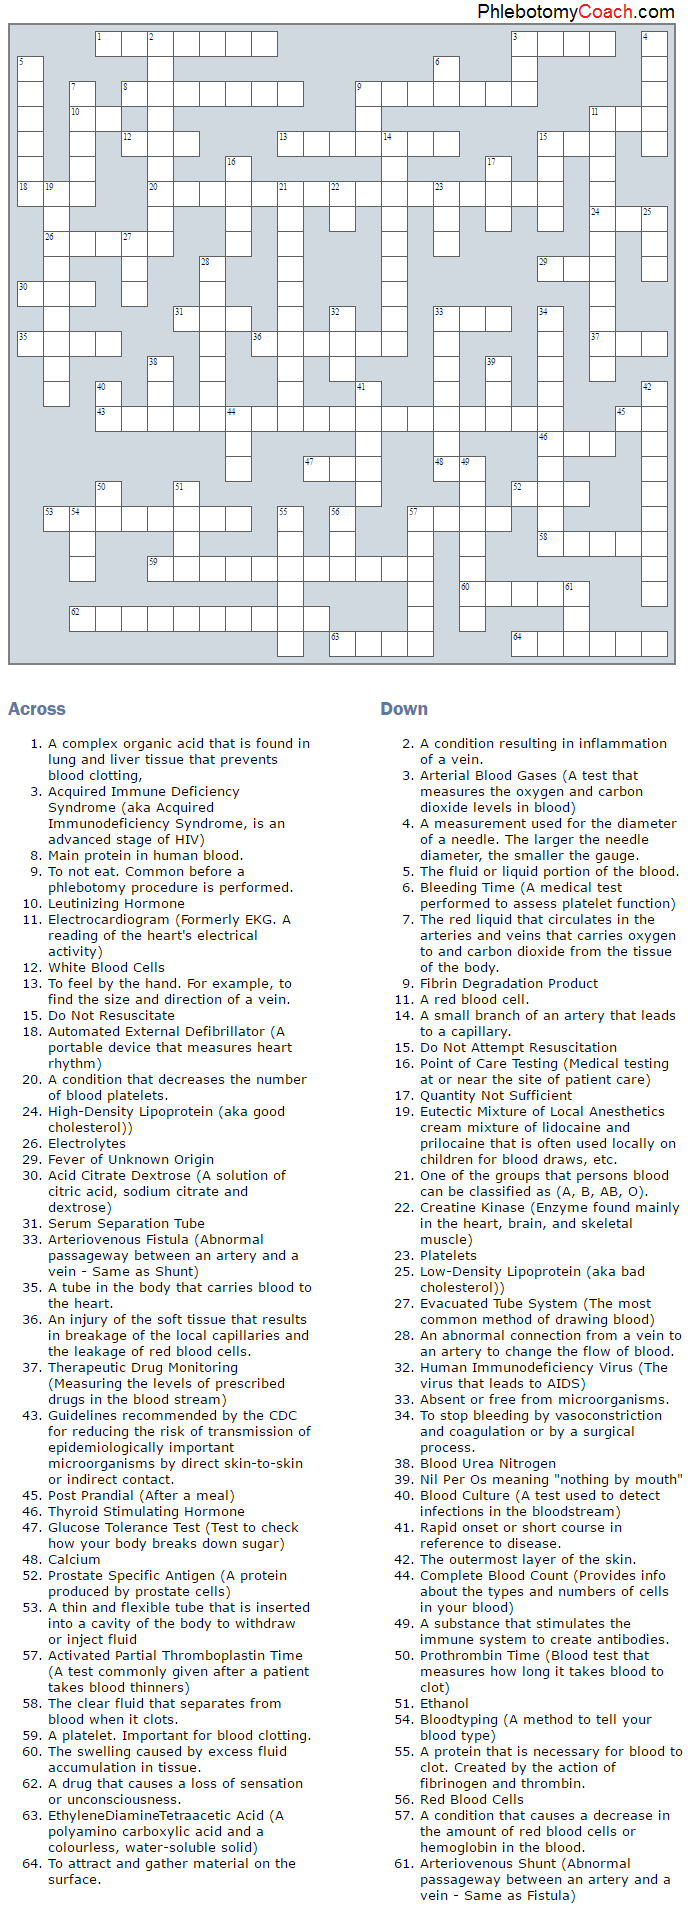 Test Your Knowledge With Our Phlebotomy Related Crossword Puzzle